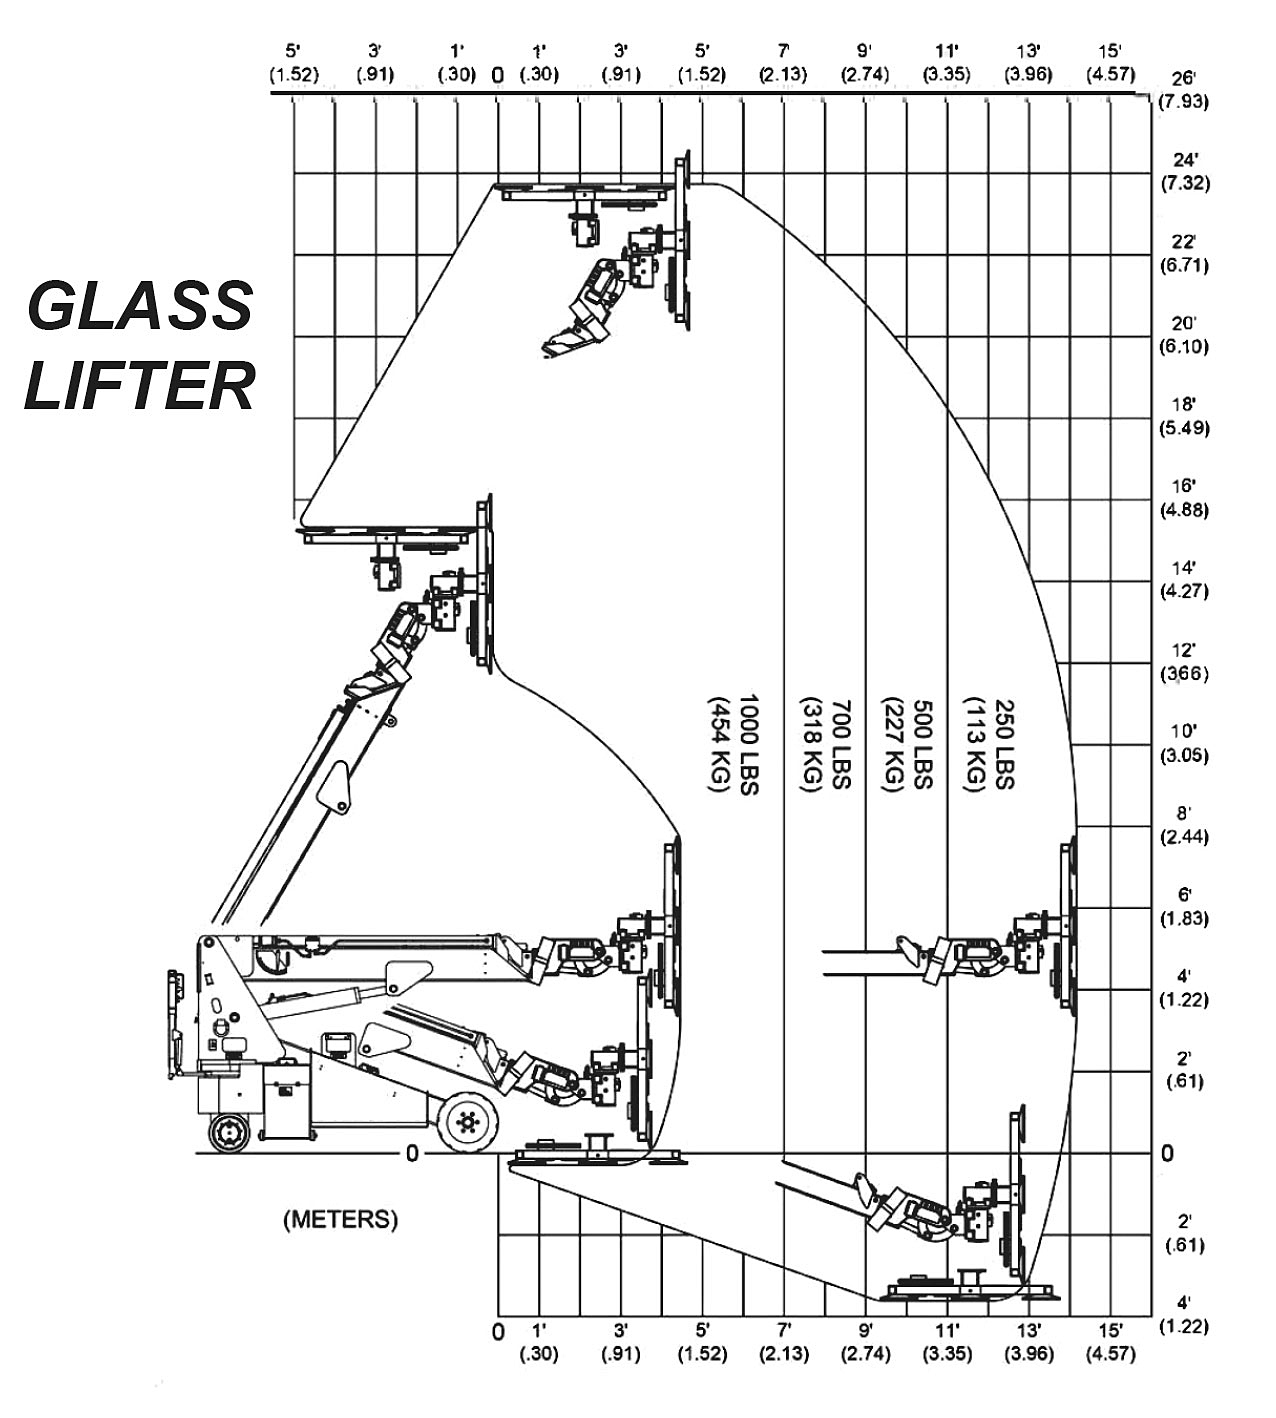 The Junior Glass Lifter Load Capacity